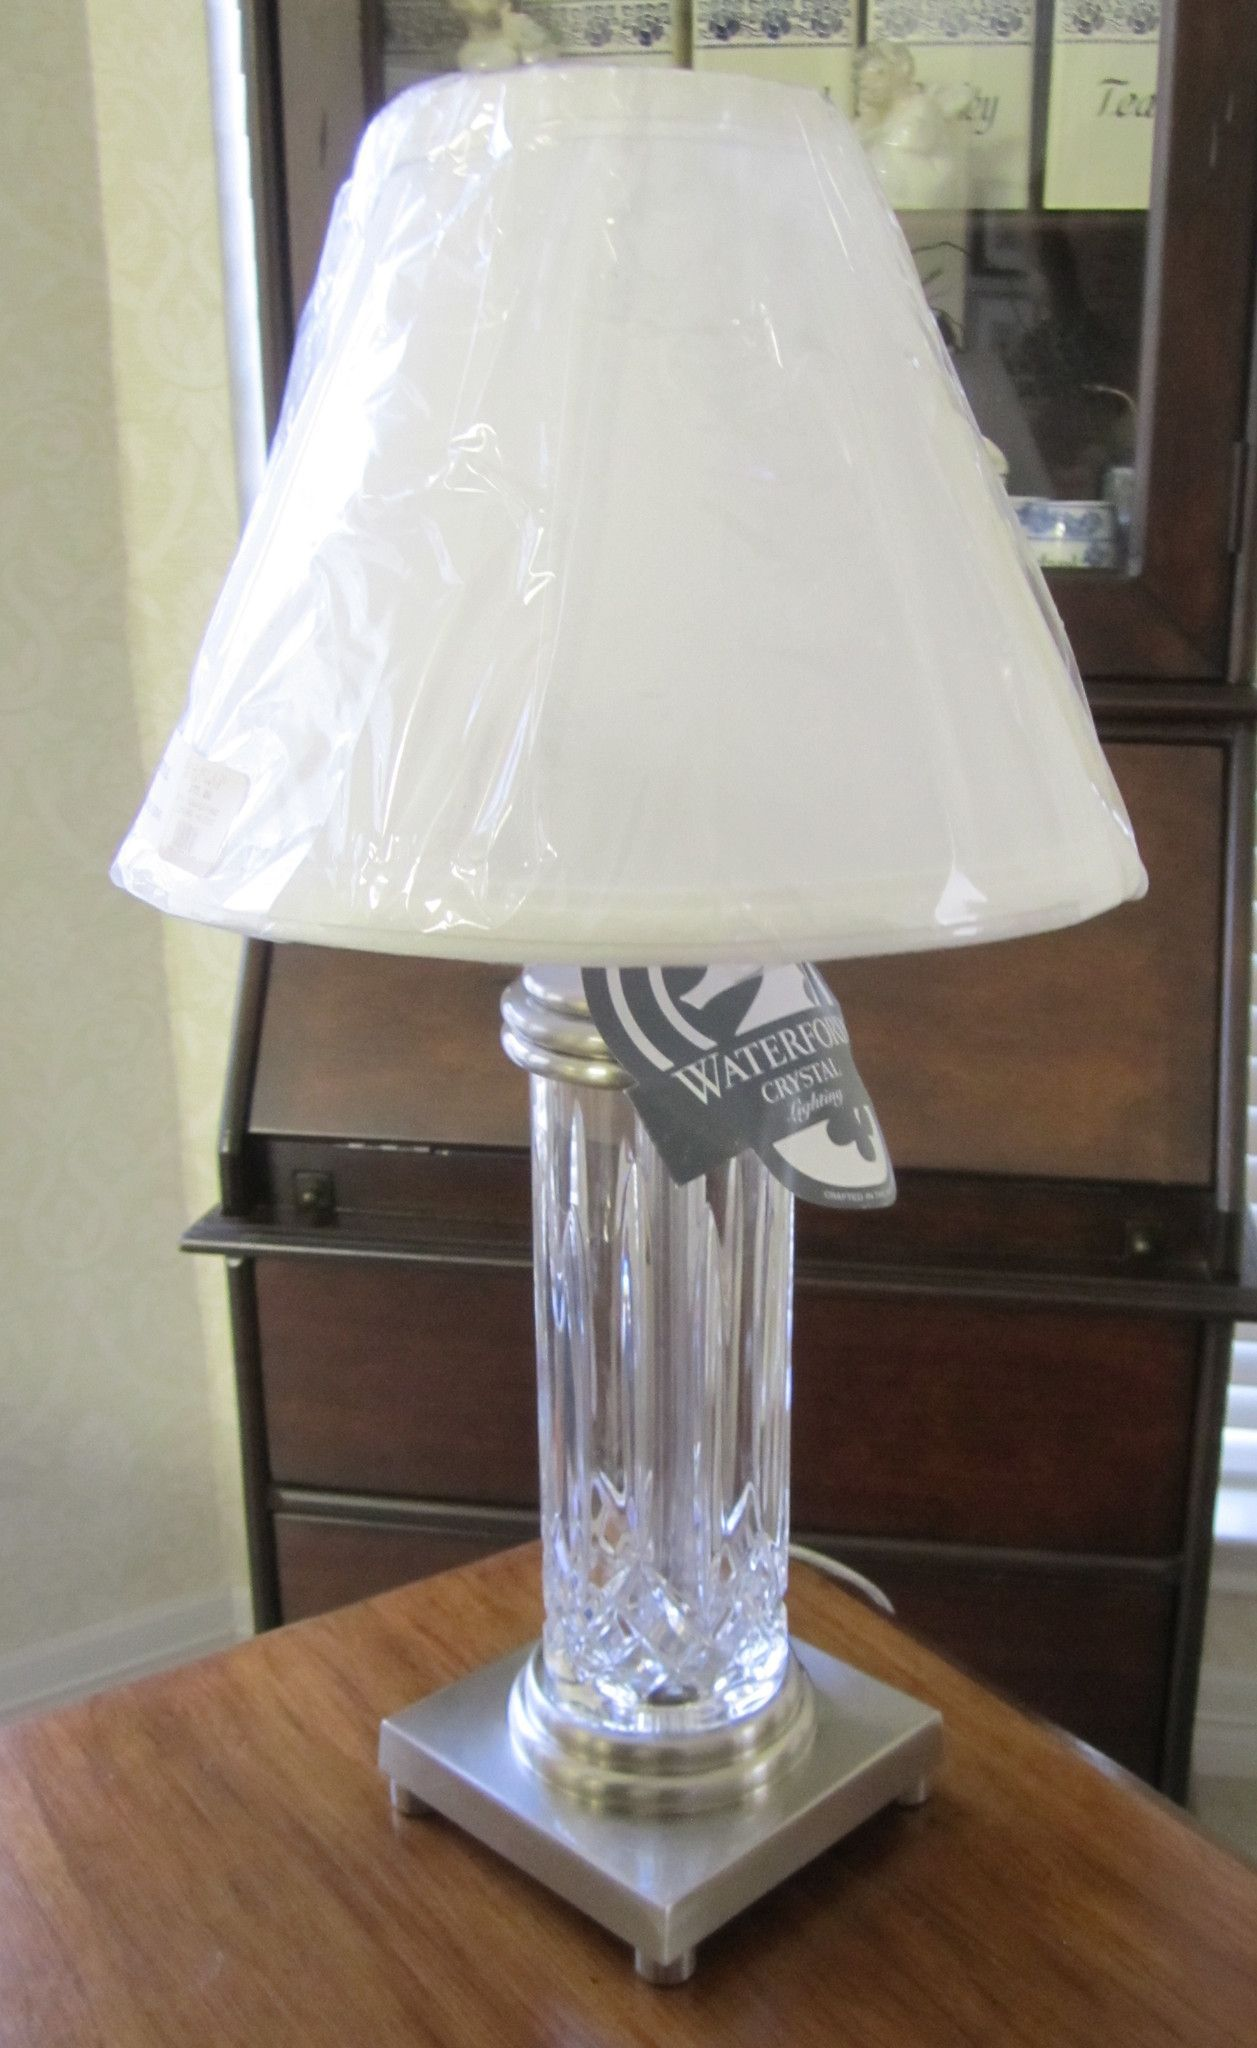 lamps lamp room home fresh design new cool under improvement waterford crystal best decor interior on modern